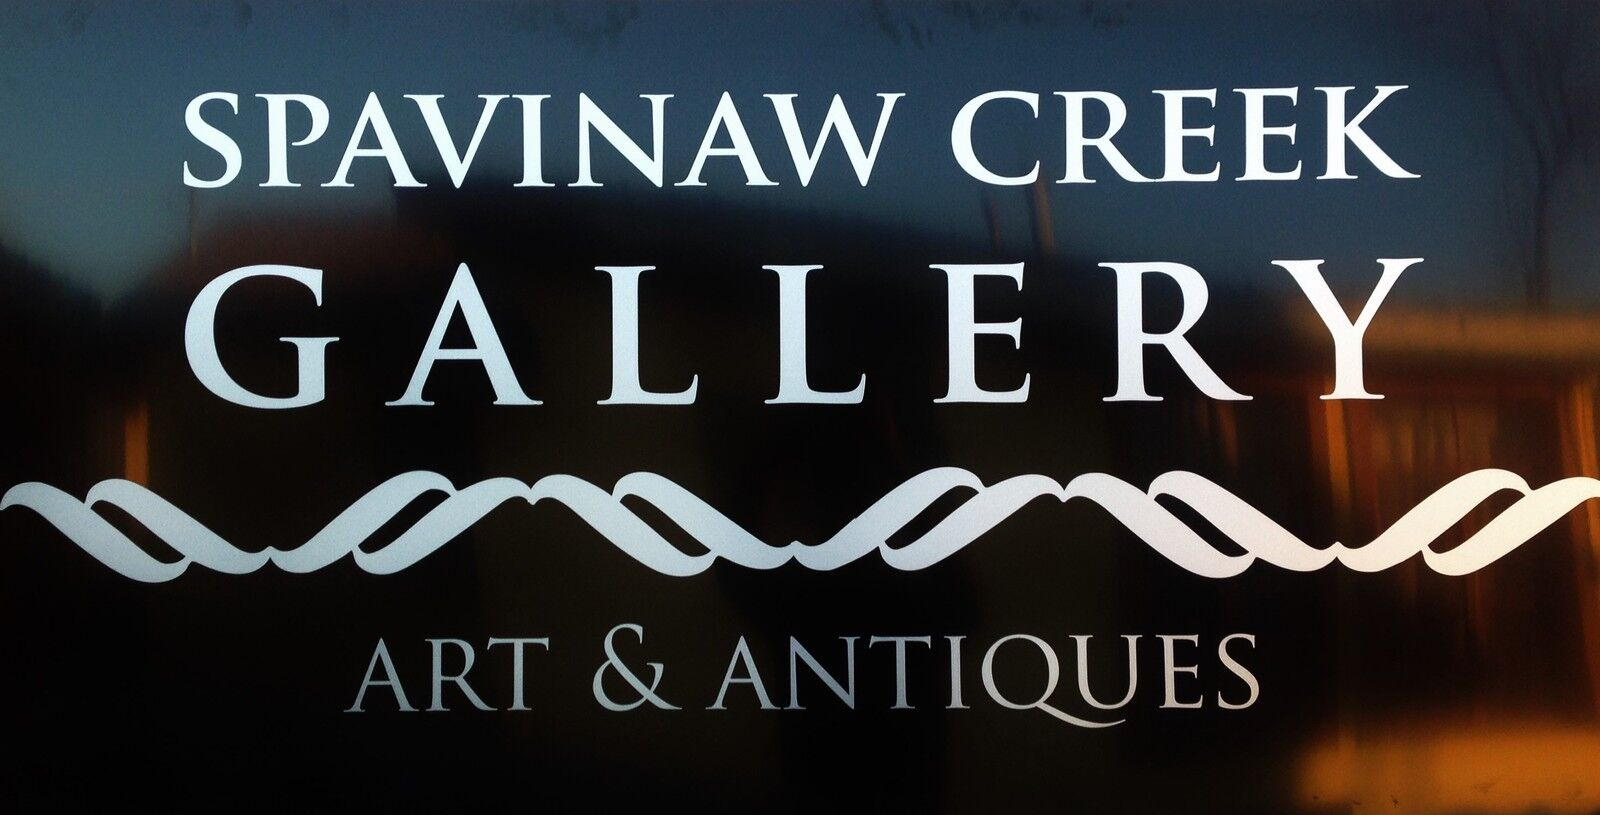 Spavinaw Creek Gallery